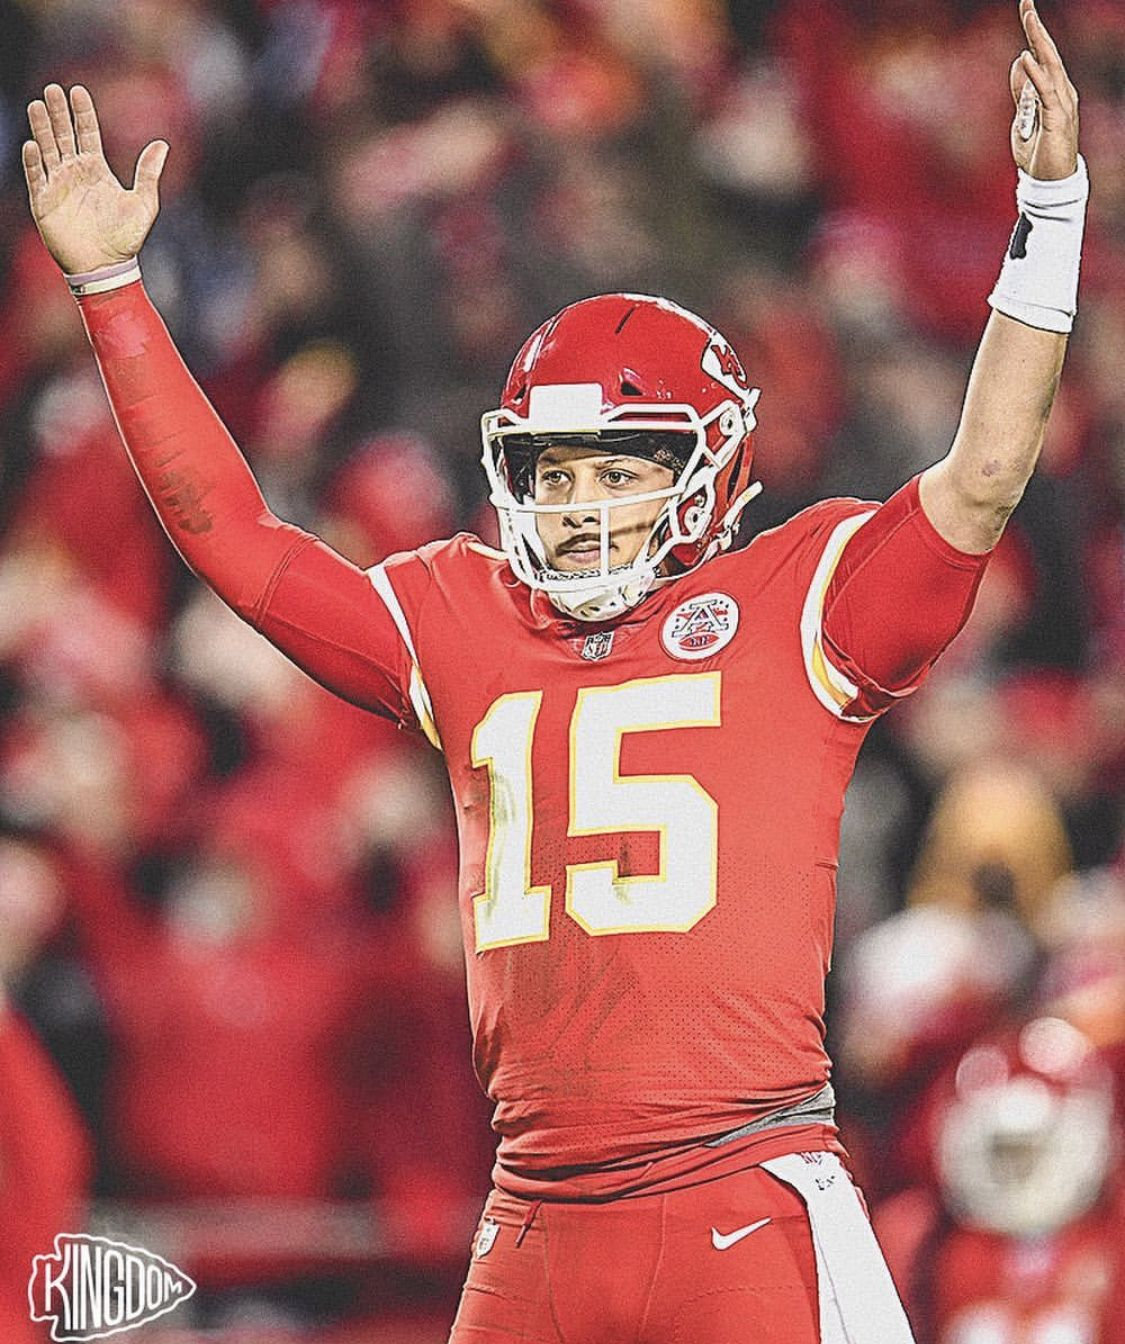 Pin by Courtney4793 on Football Kansas city chiefs